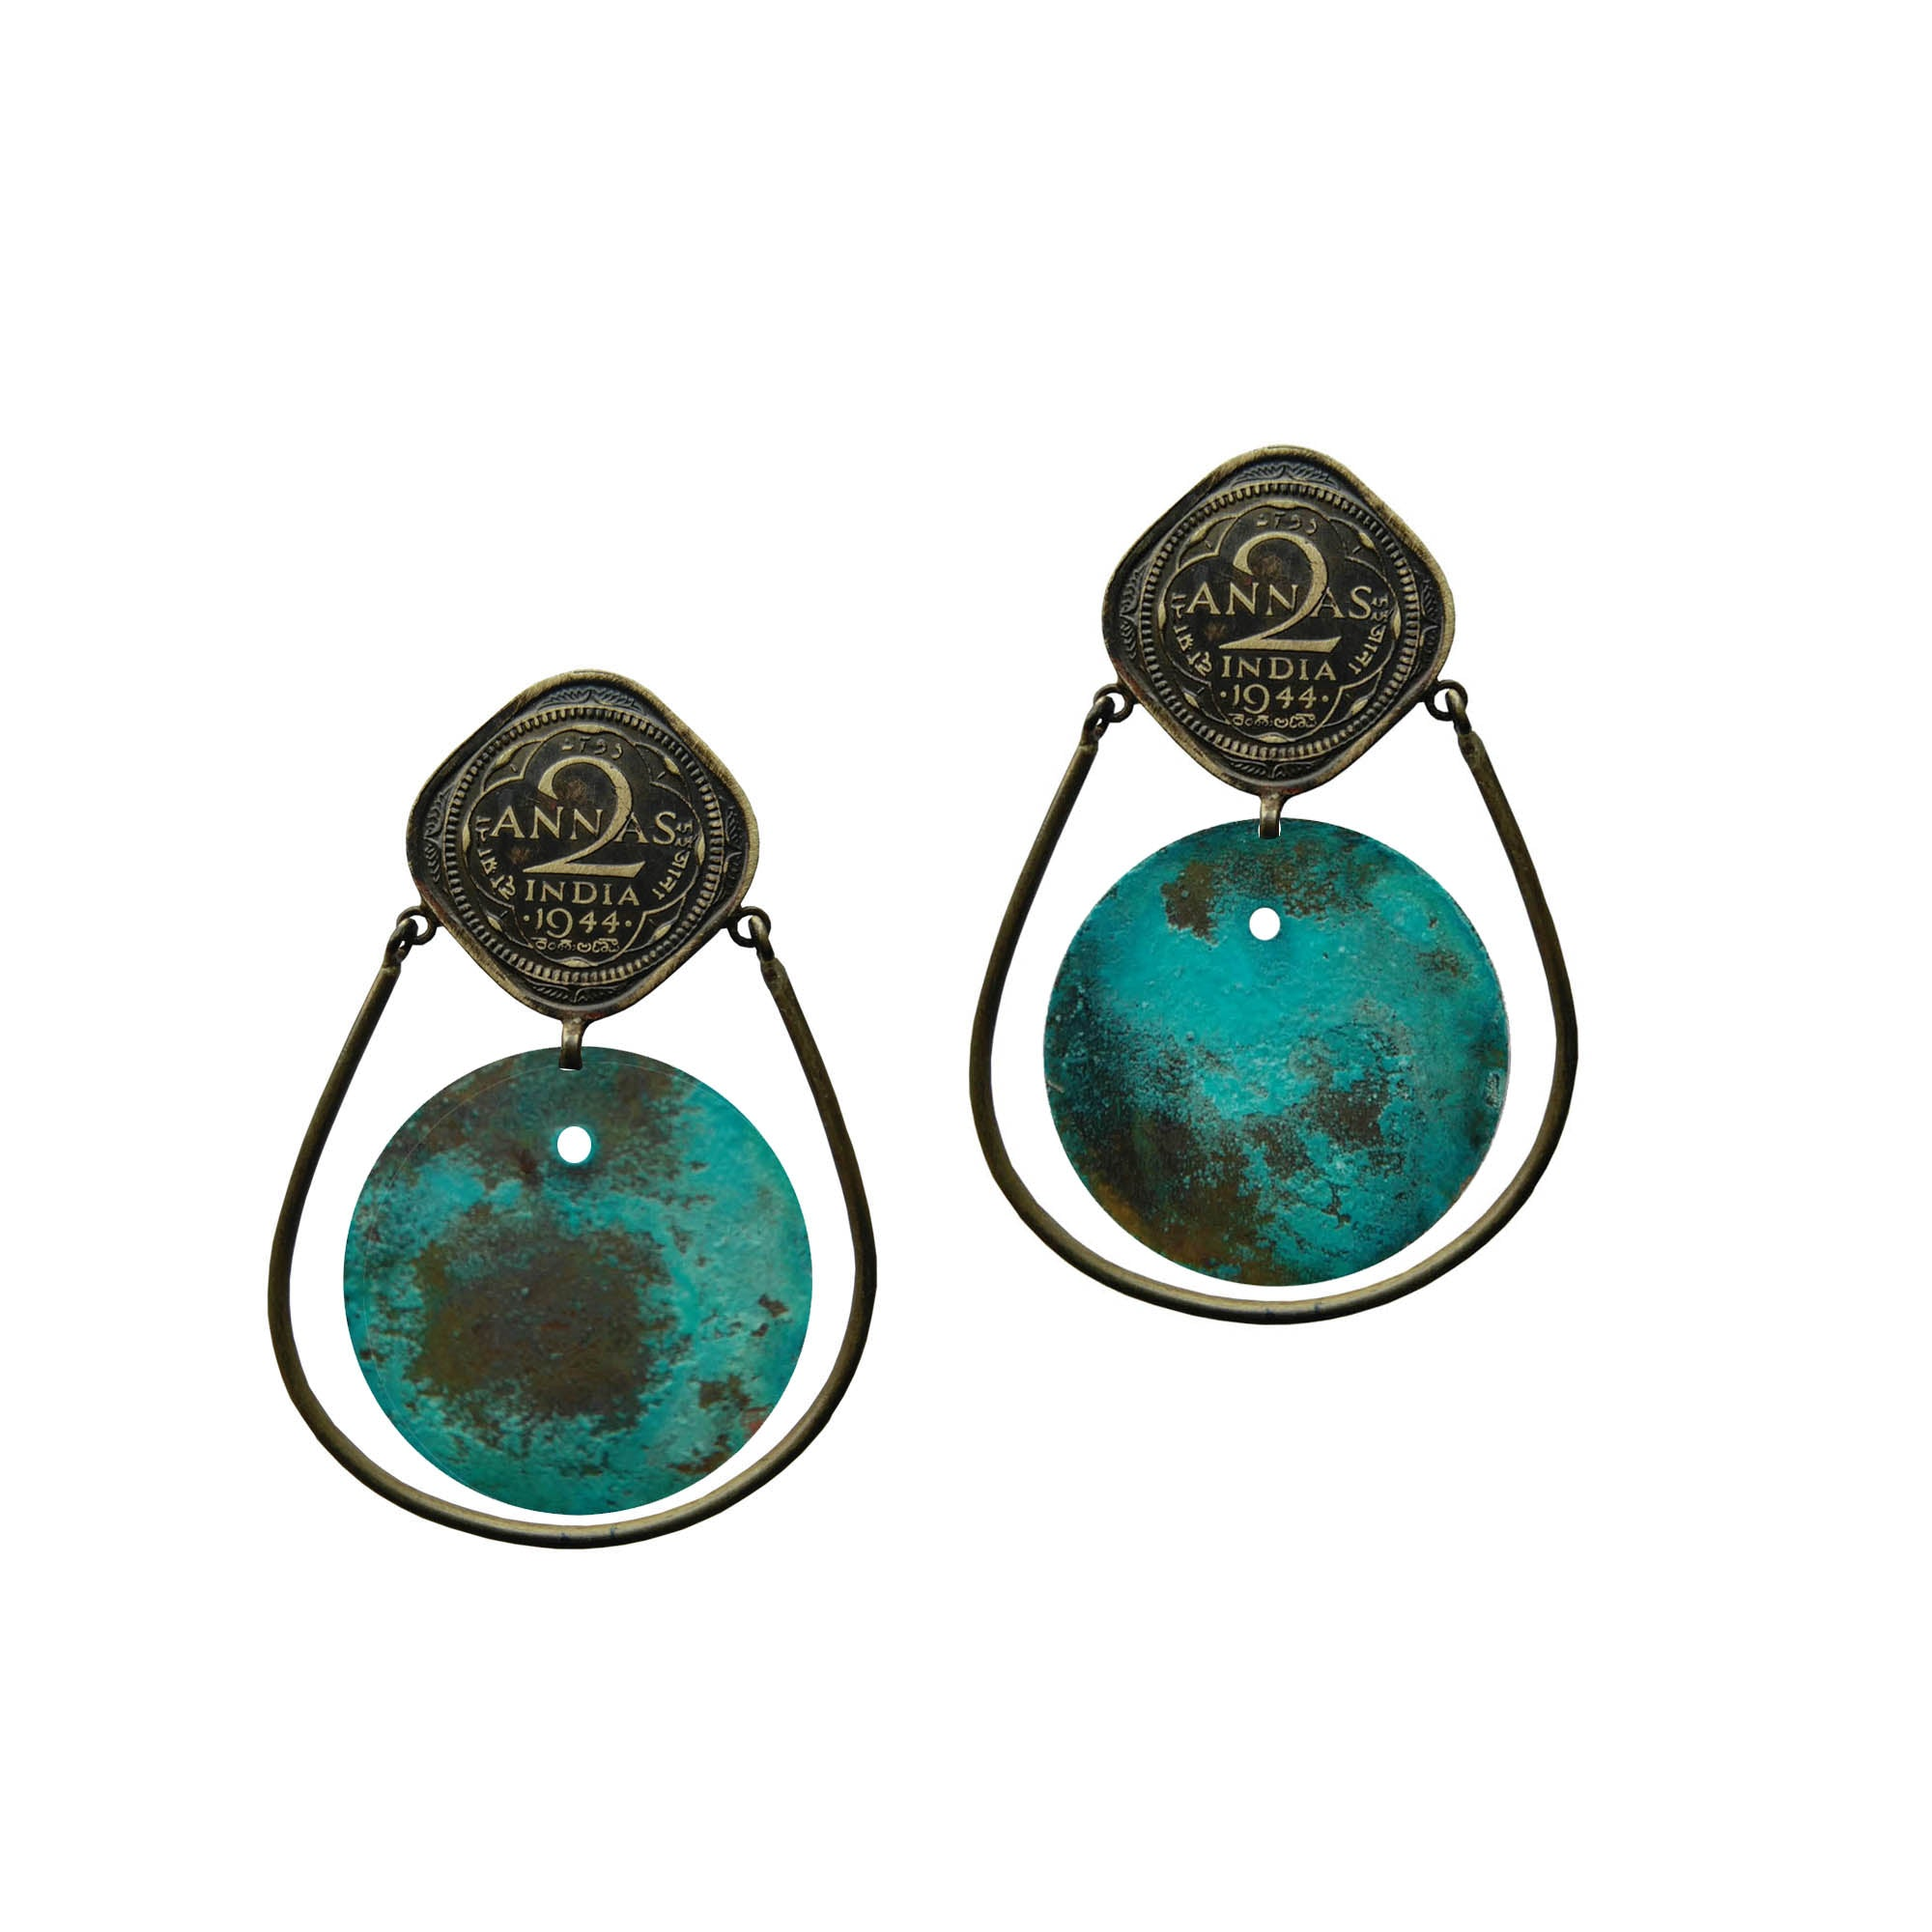 2 anna circle loop earrings